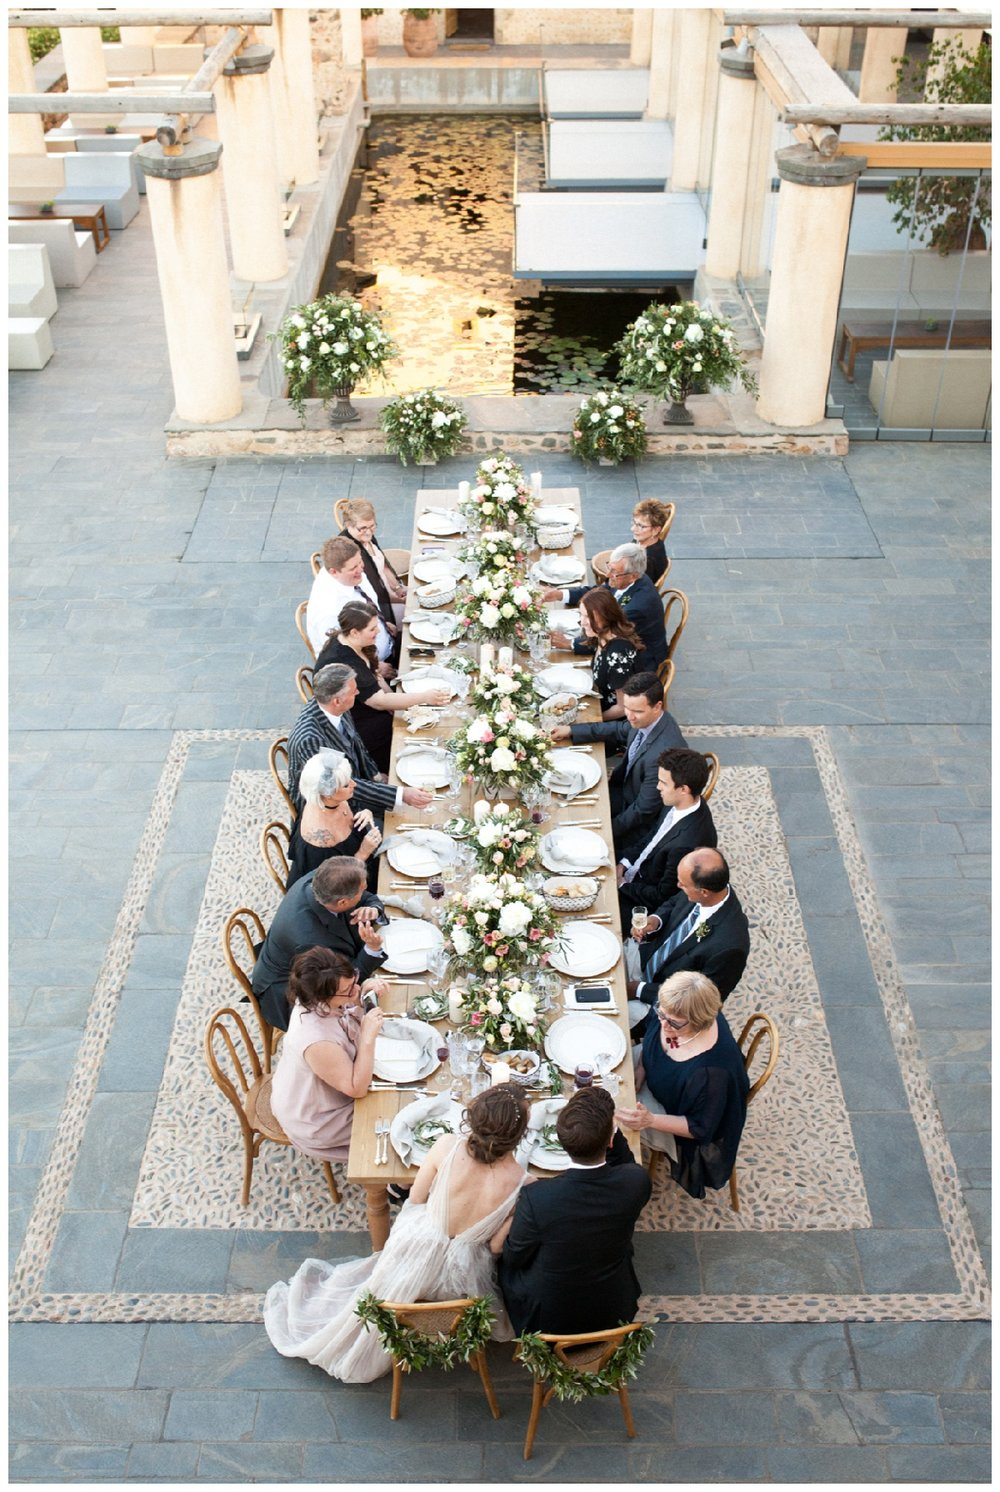 Greek Destination Wedding - Tessa Kit Photography - Wedding Photographer - Monemvasia Greece - IMG_3206-.jpg